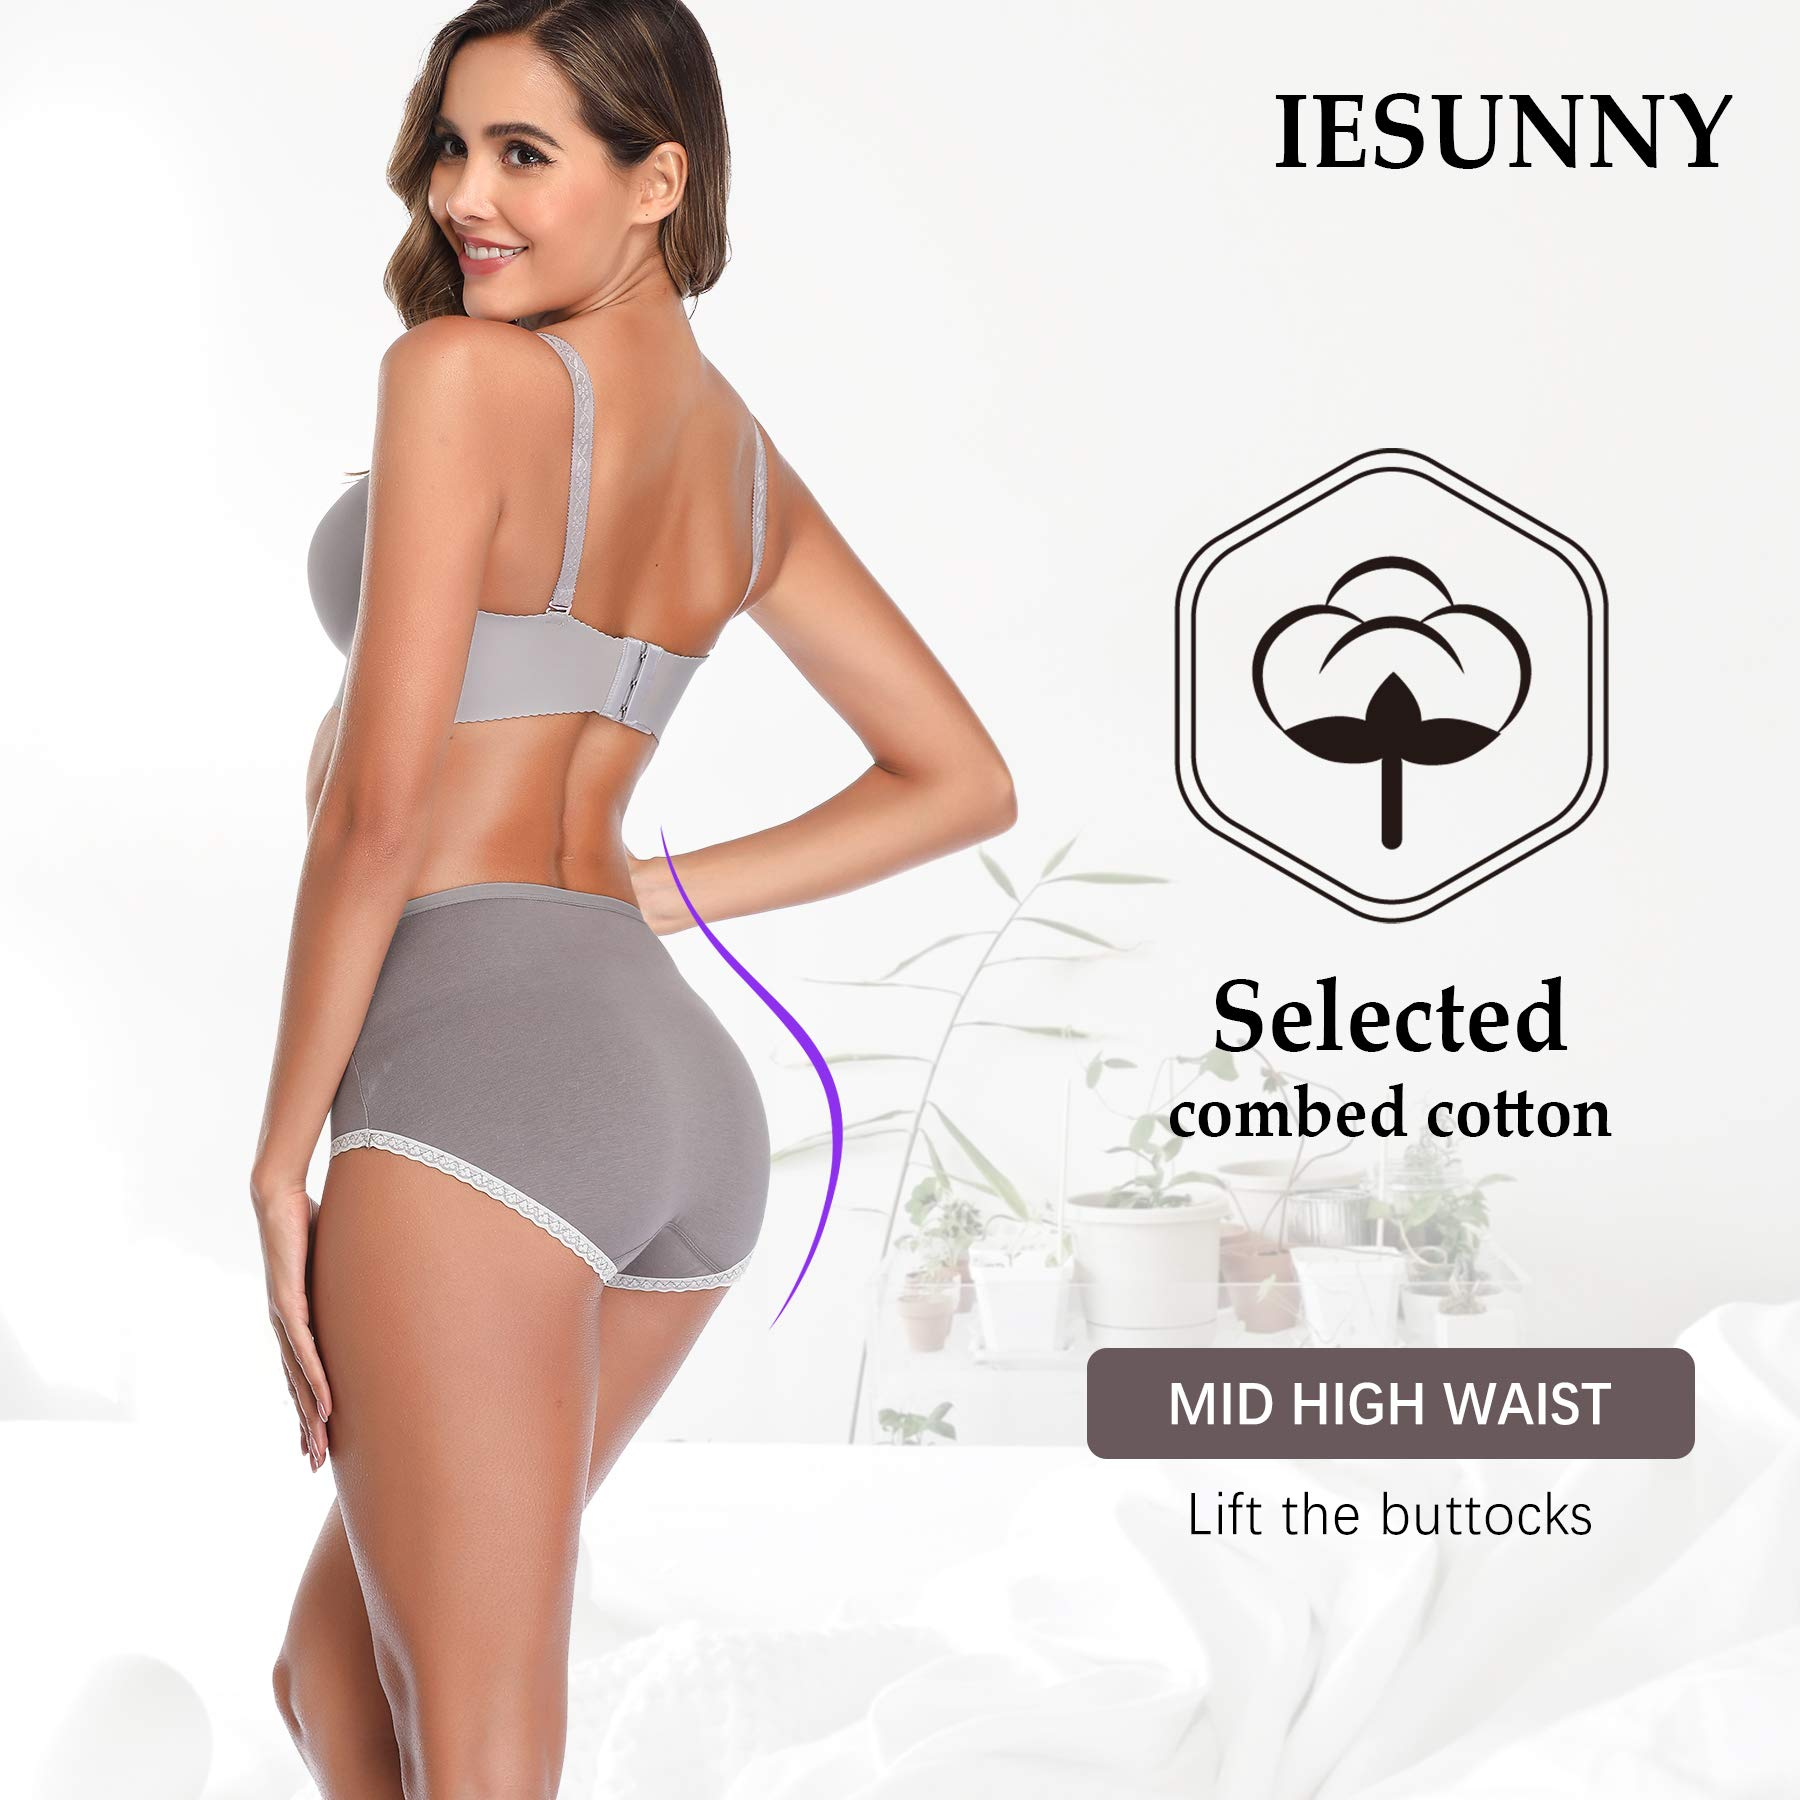 IESUNNY Women\'s Underwear Cotton, Mid Rise Breathable Cotton Lady Soft Panties Briefs for Women (1black+1beige+1green+1gray+1pink=Total 5 Pack, L)